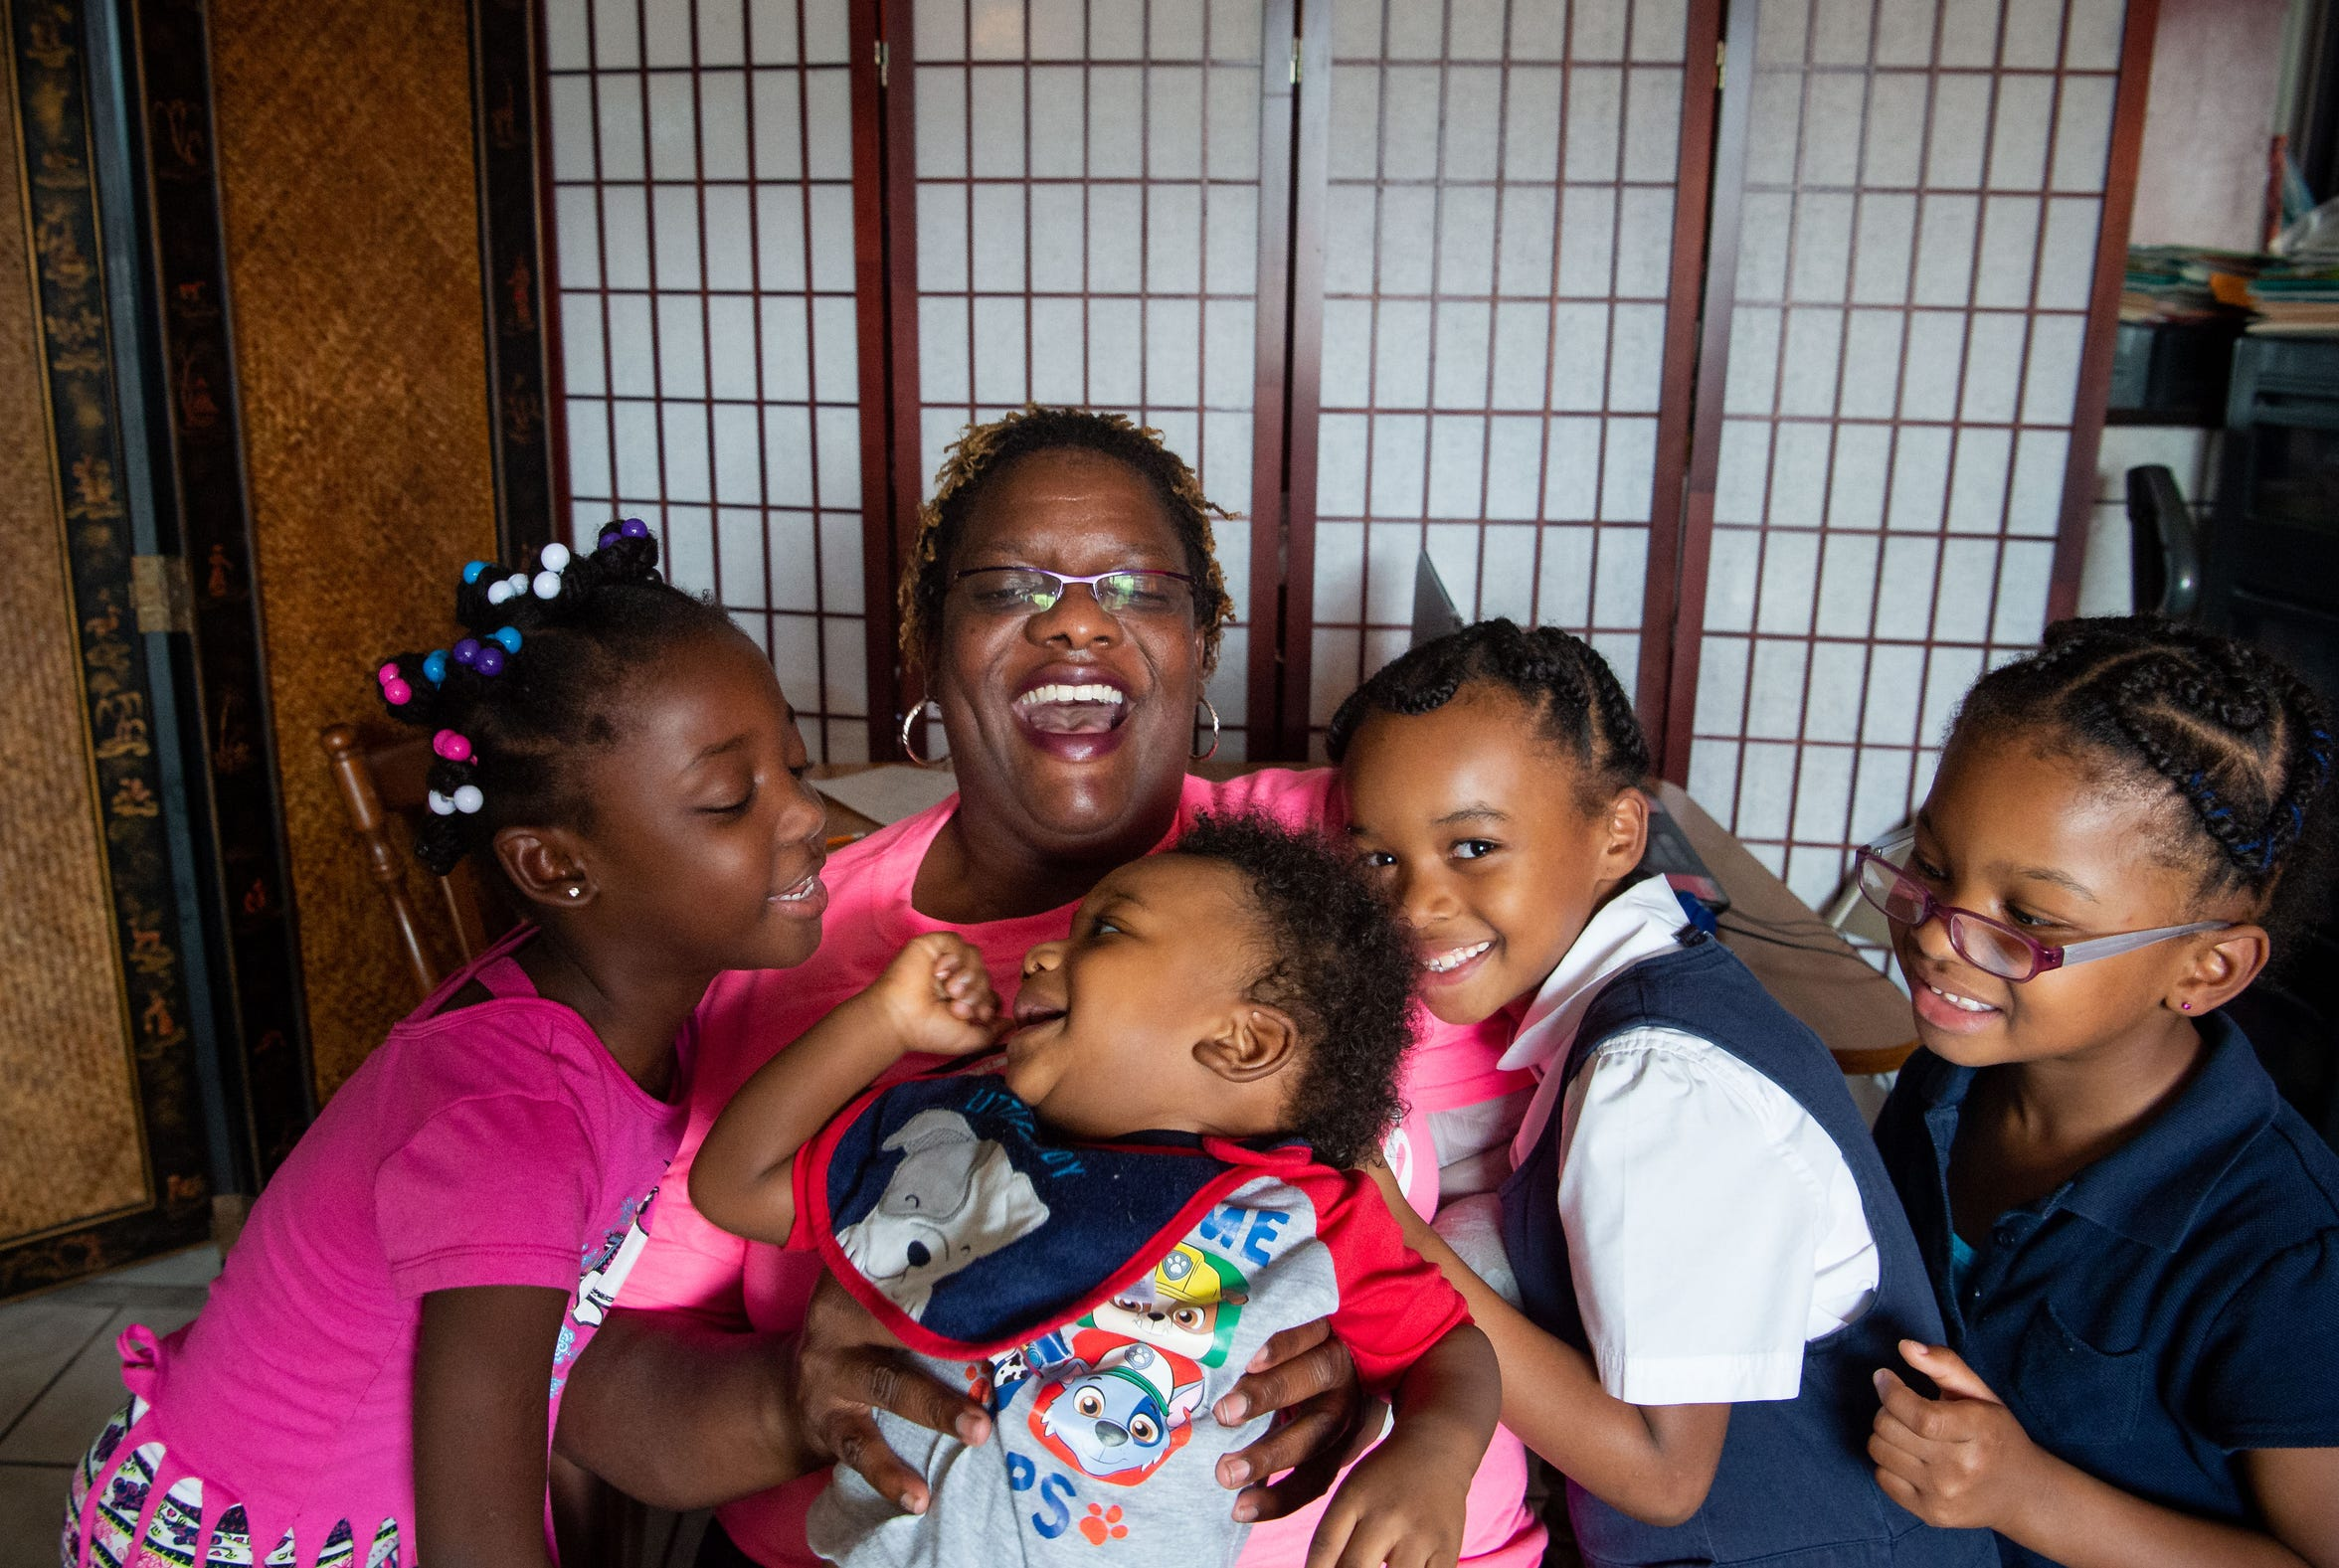 "Pamela Turner — a disabled Navy veteran, cancer survivor, former corrections officer and single mother of four — poses for a family portrait with (from left) her 6-year-old biological daughter Matteo Leger, and foster children Marc Turner Jr., 1, Jahzara Turner, 6, and Marjani Turner, 5, at home Oct. 9, 2018, in Fort Pierce. Turner said something that worries her about the future of Florida is healthcare. ""I have a daughter, she has a pre-existing condition but it's covered under Florida Medicaid, but sometimes it's difficult to get certain medications because the medications cost too much money...you have to learn how to do research to find out what methods you have available to use."""